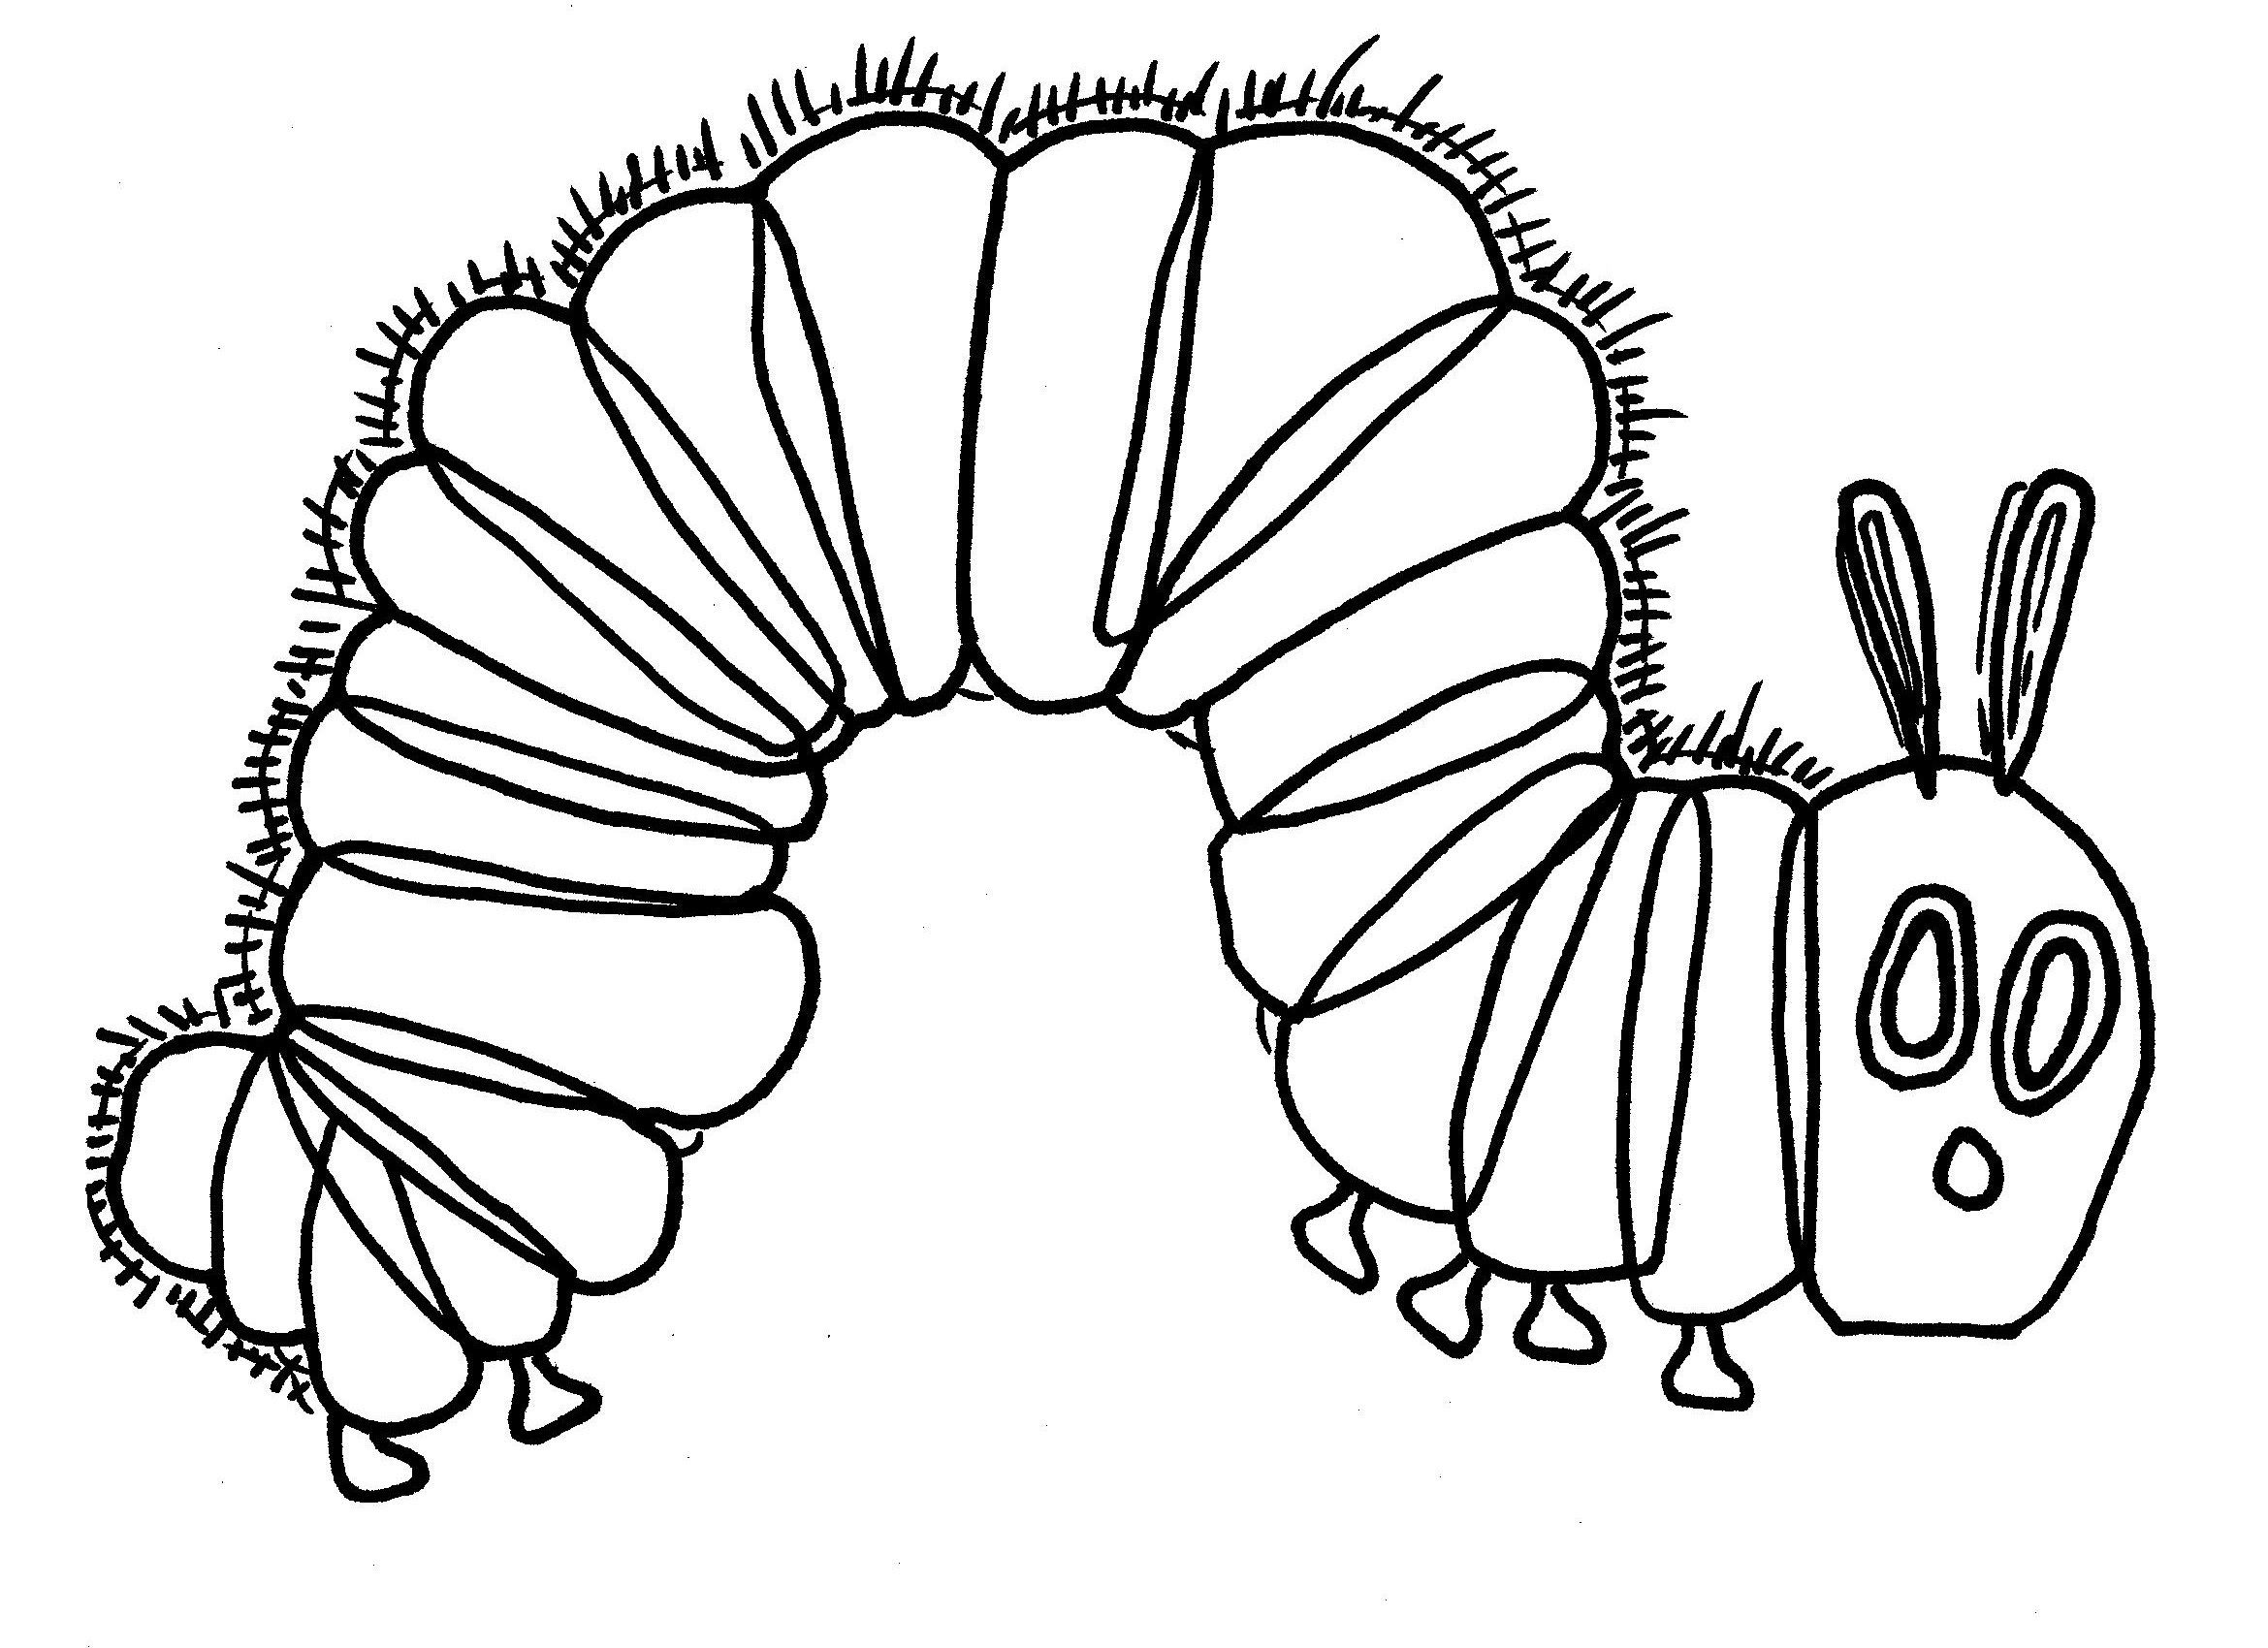 Hungry Caterpillar Art And Coloring Page